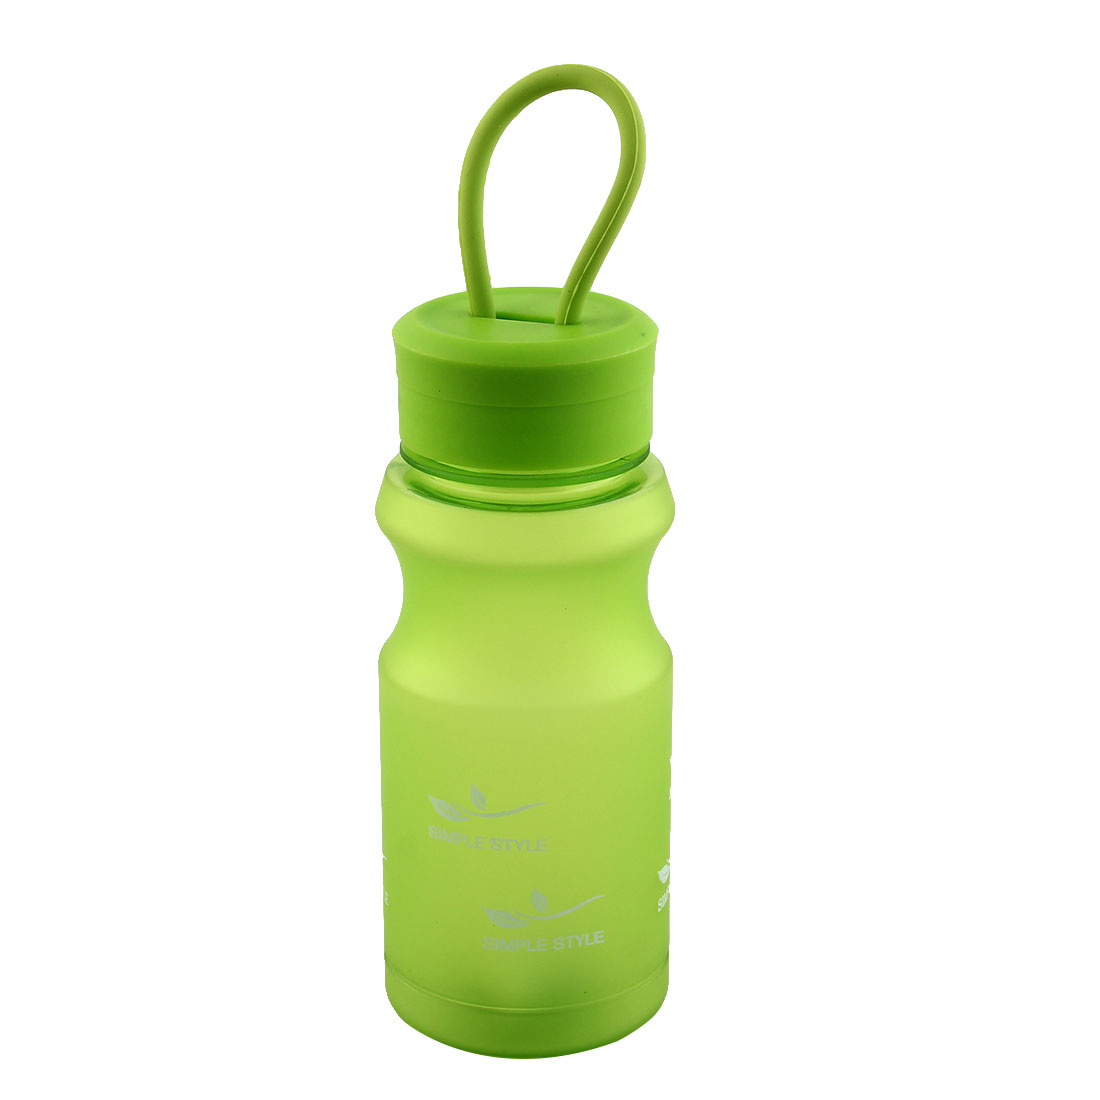 Outdoor Travel Plastic Letter Pattern Running Water Bottle Frosted Tea Cup Mug Biking Sports Kettle Green 400ml